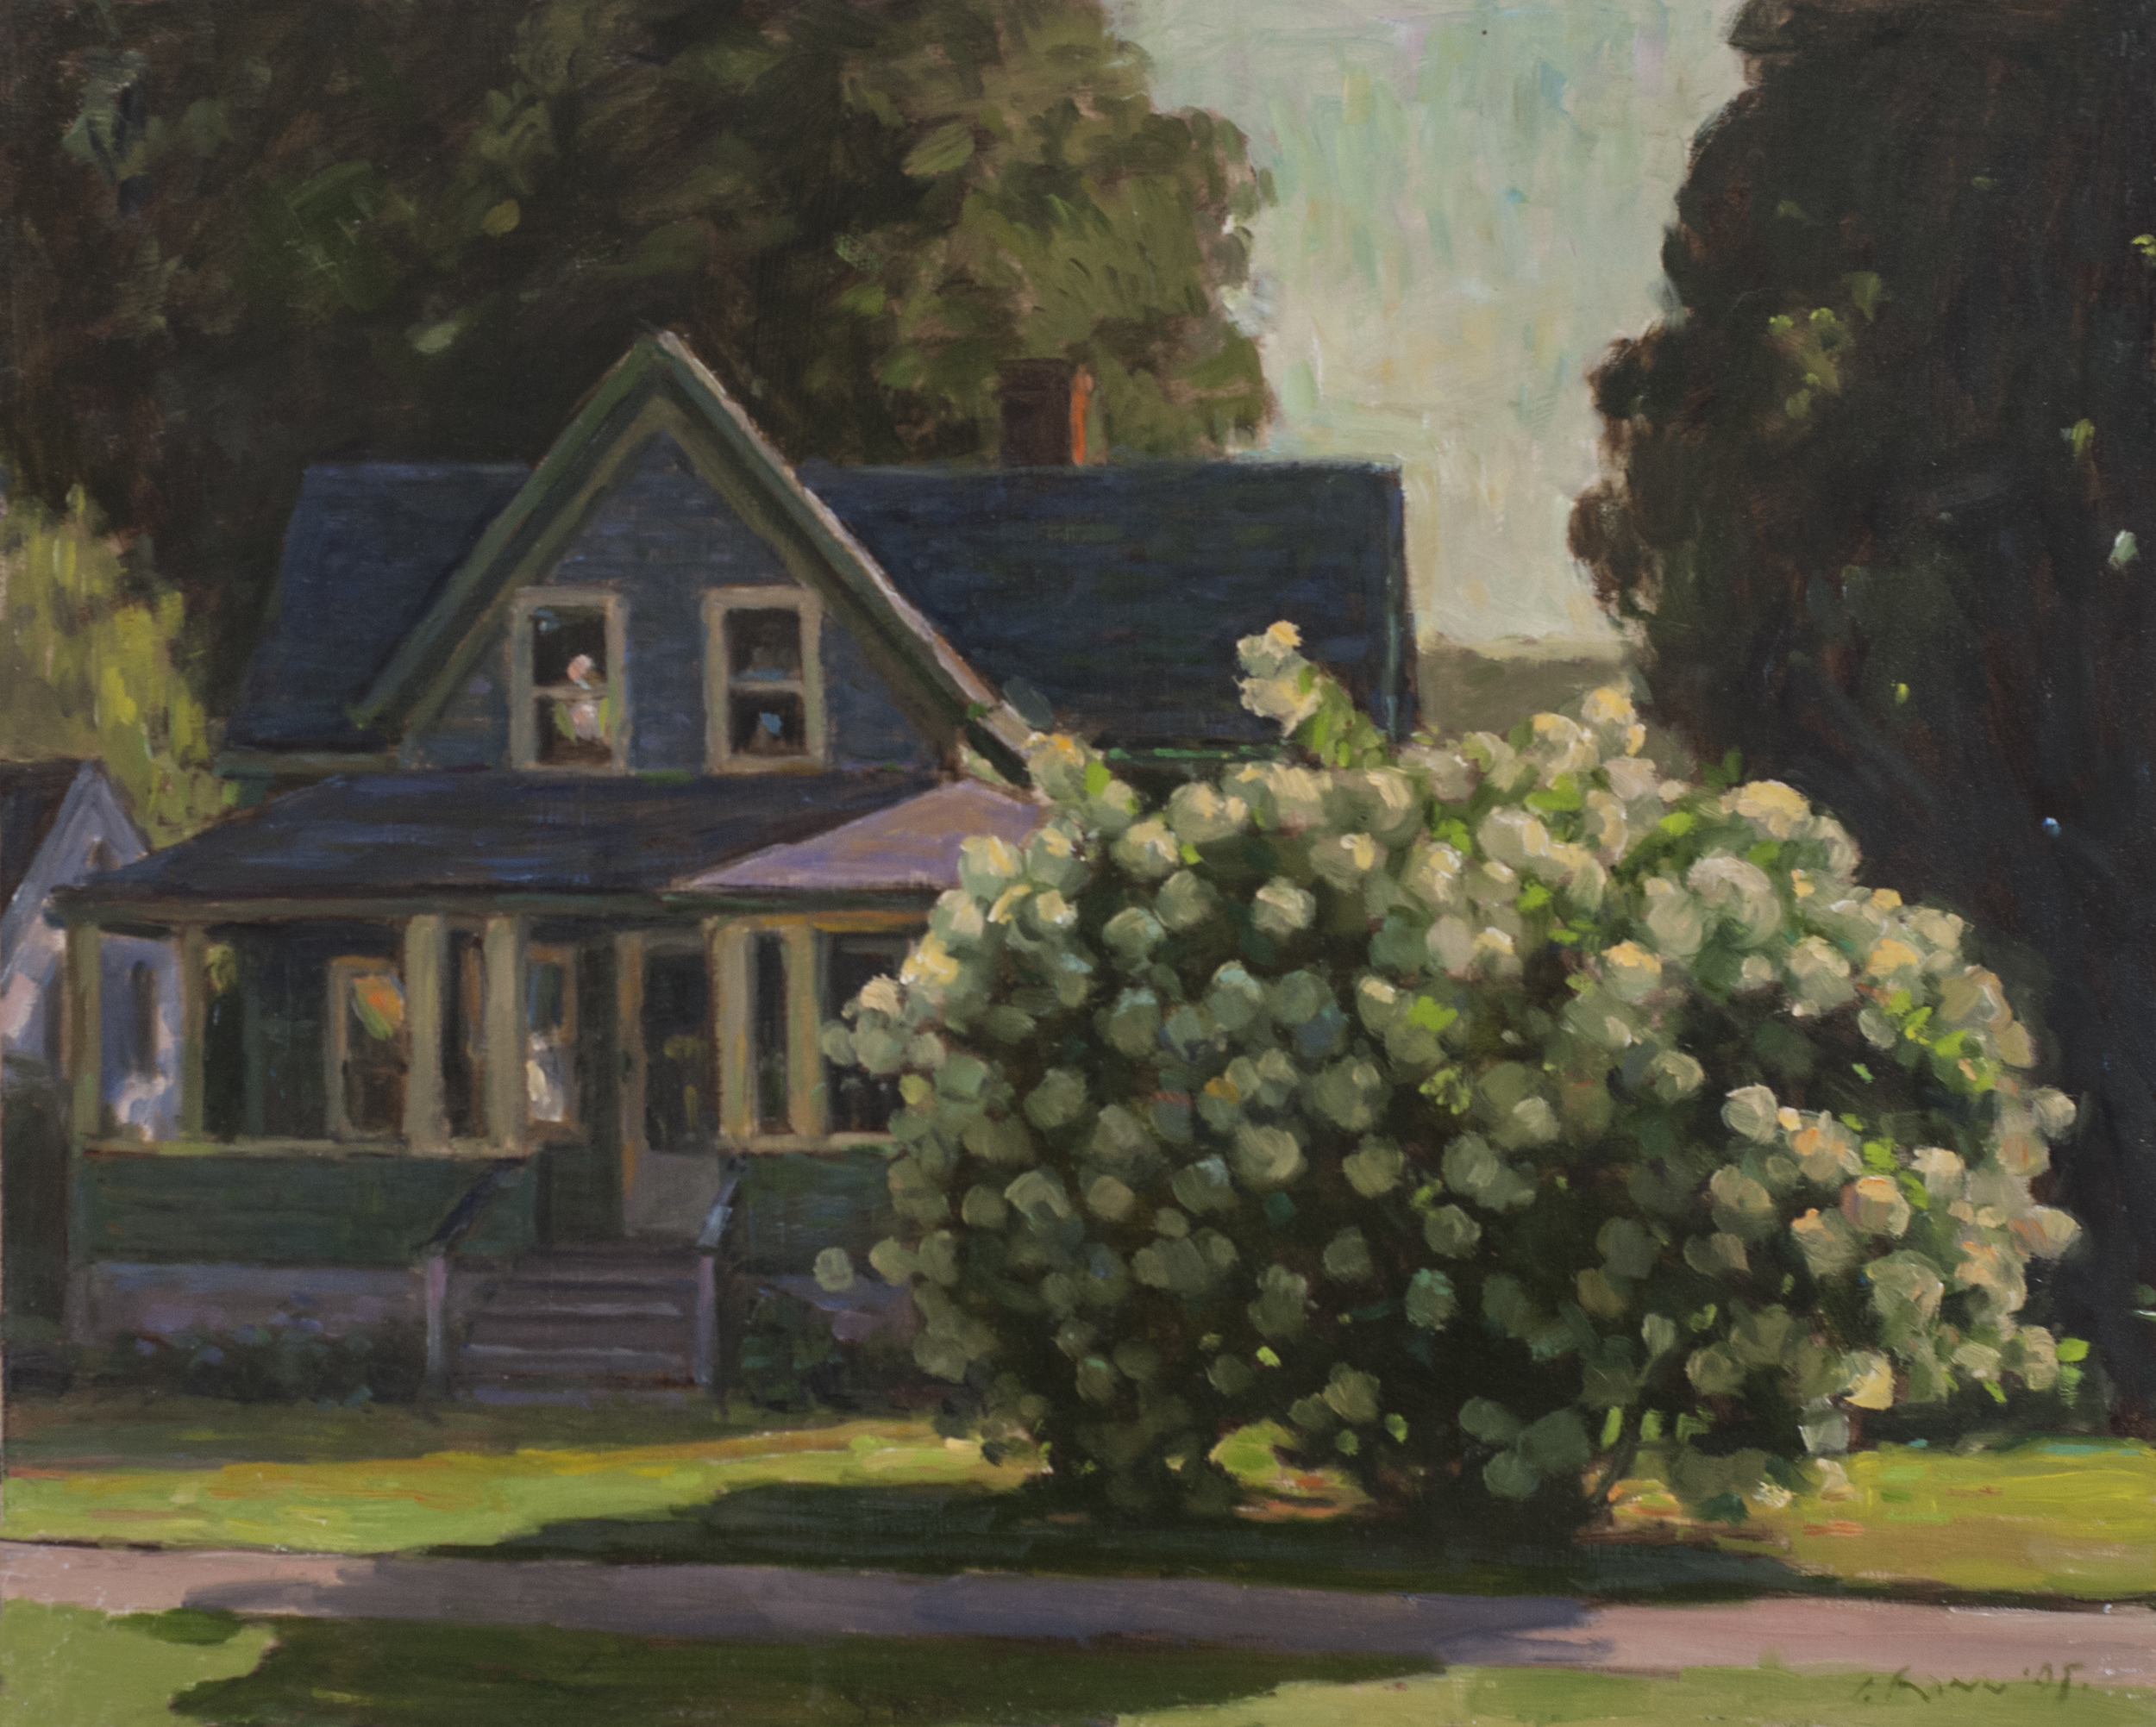 House with Hydrangea, Oil on board, 16x20 inches.